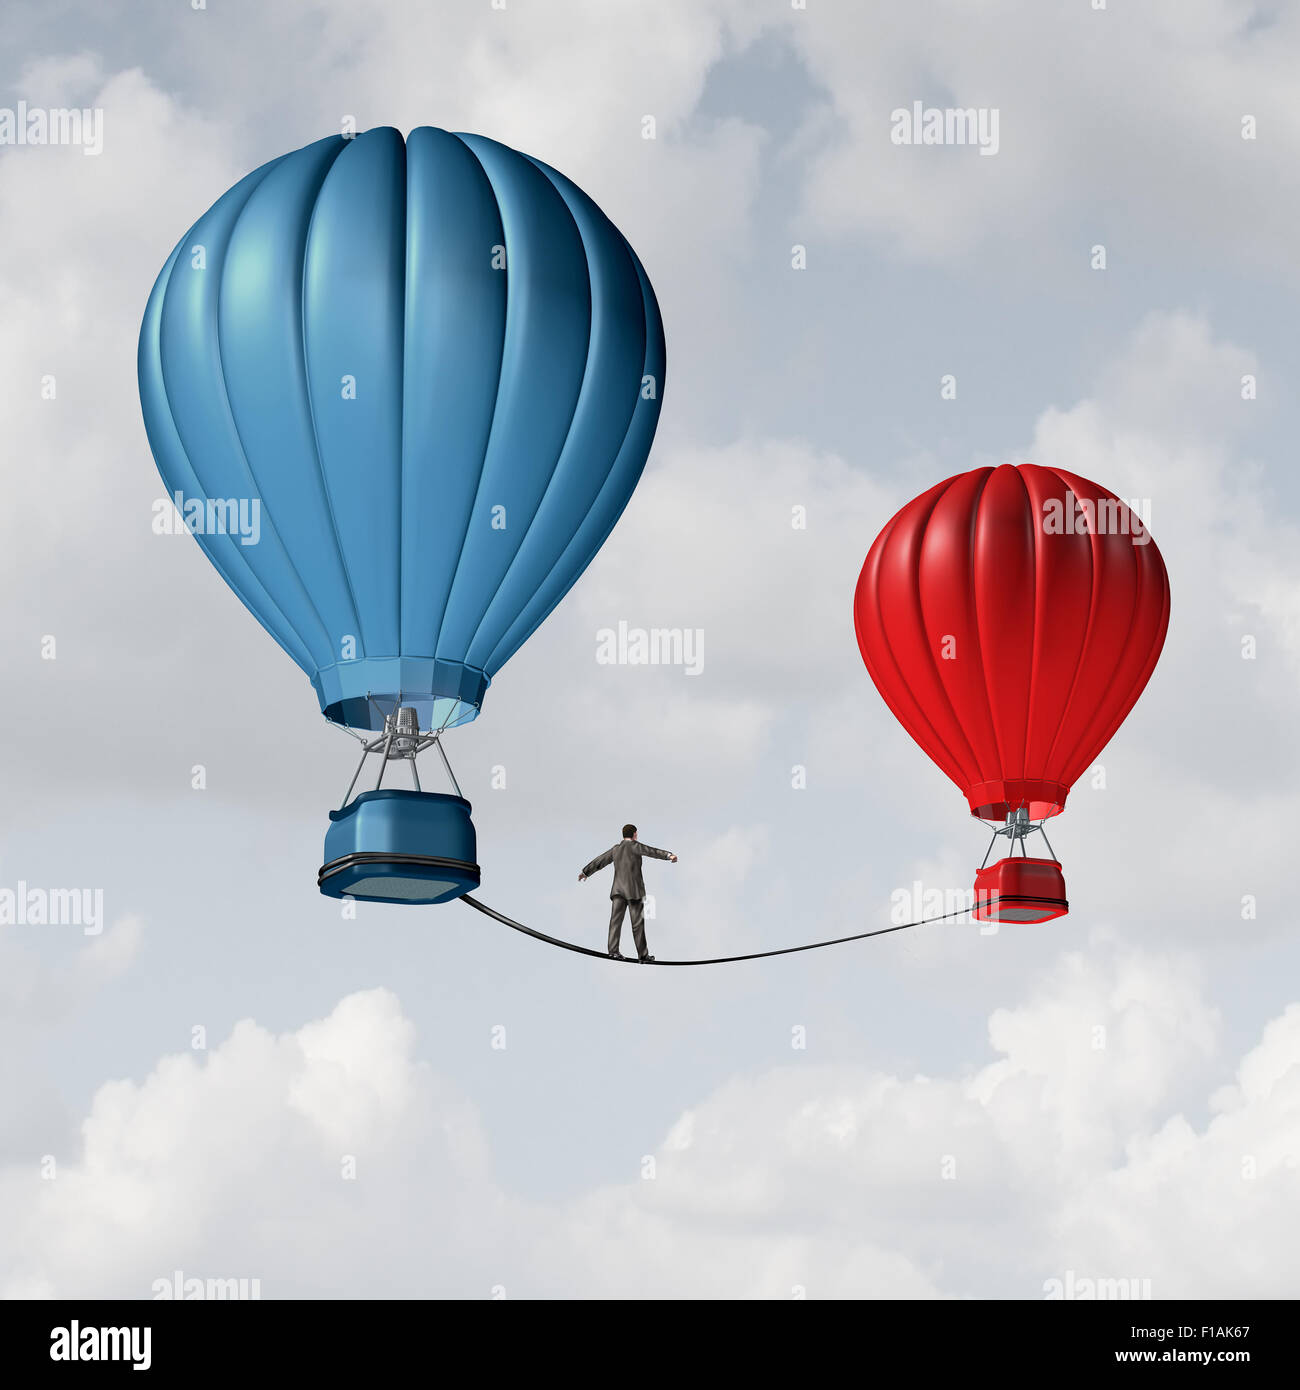 Change challenge and caution business motivational concept as person walking on a tight rope high wire from one - Stock Image